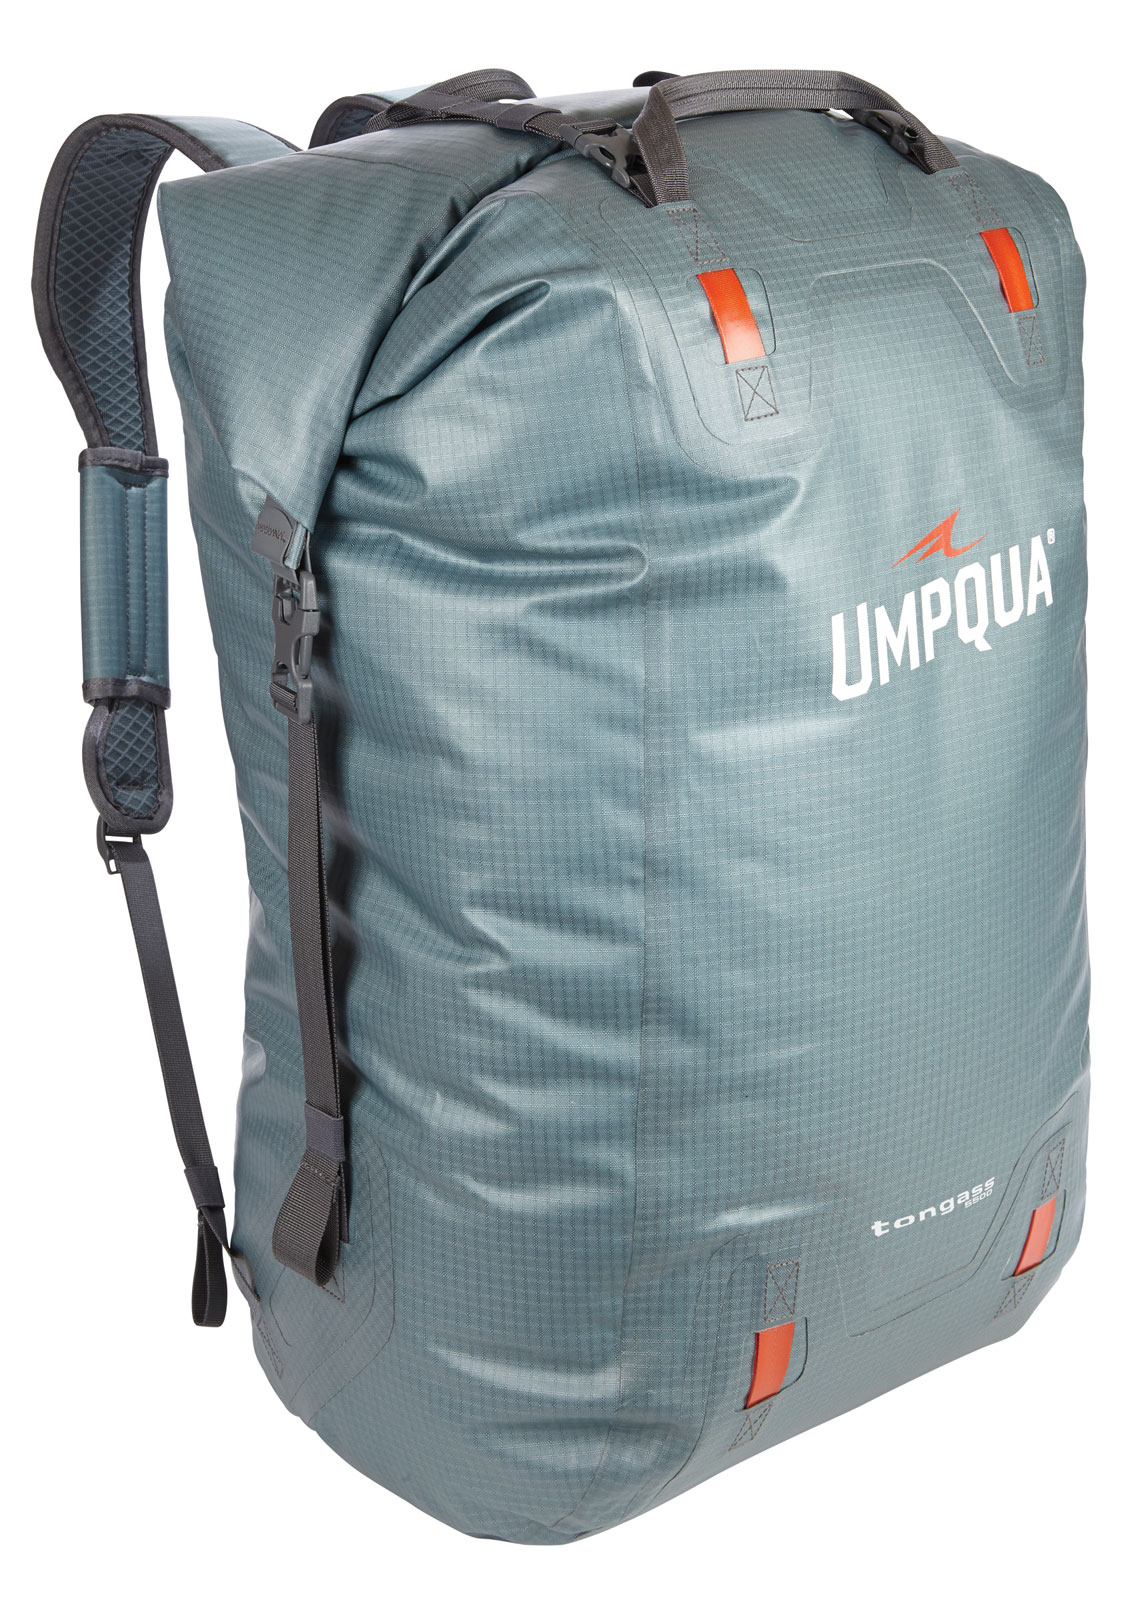 Umpqua tongass 5500 waterproof gear bag fly fishing for Fly fishing backpack